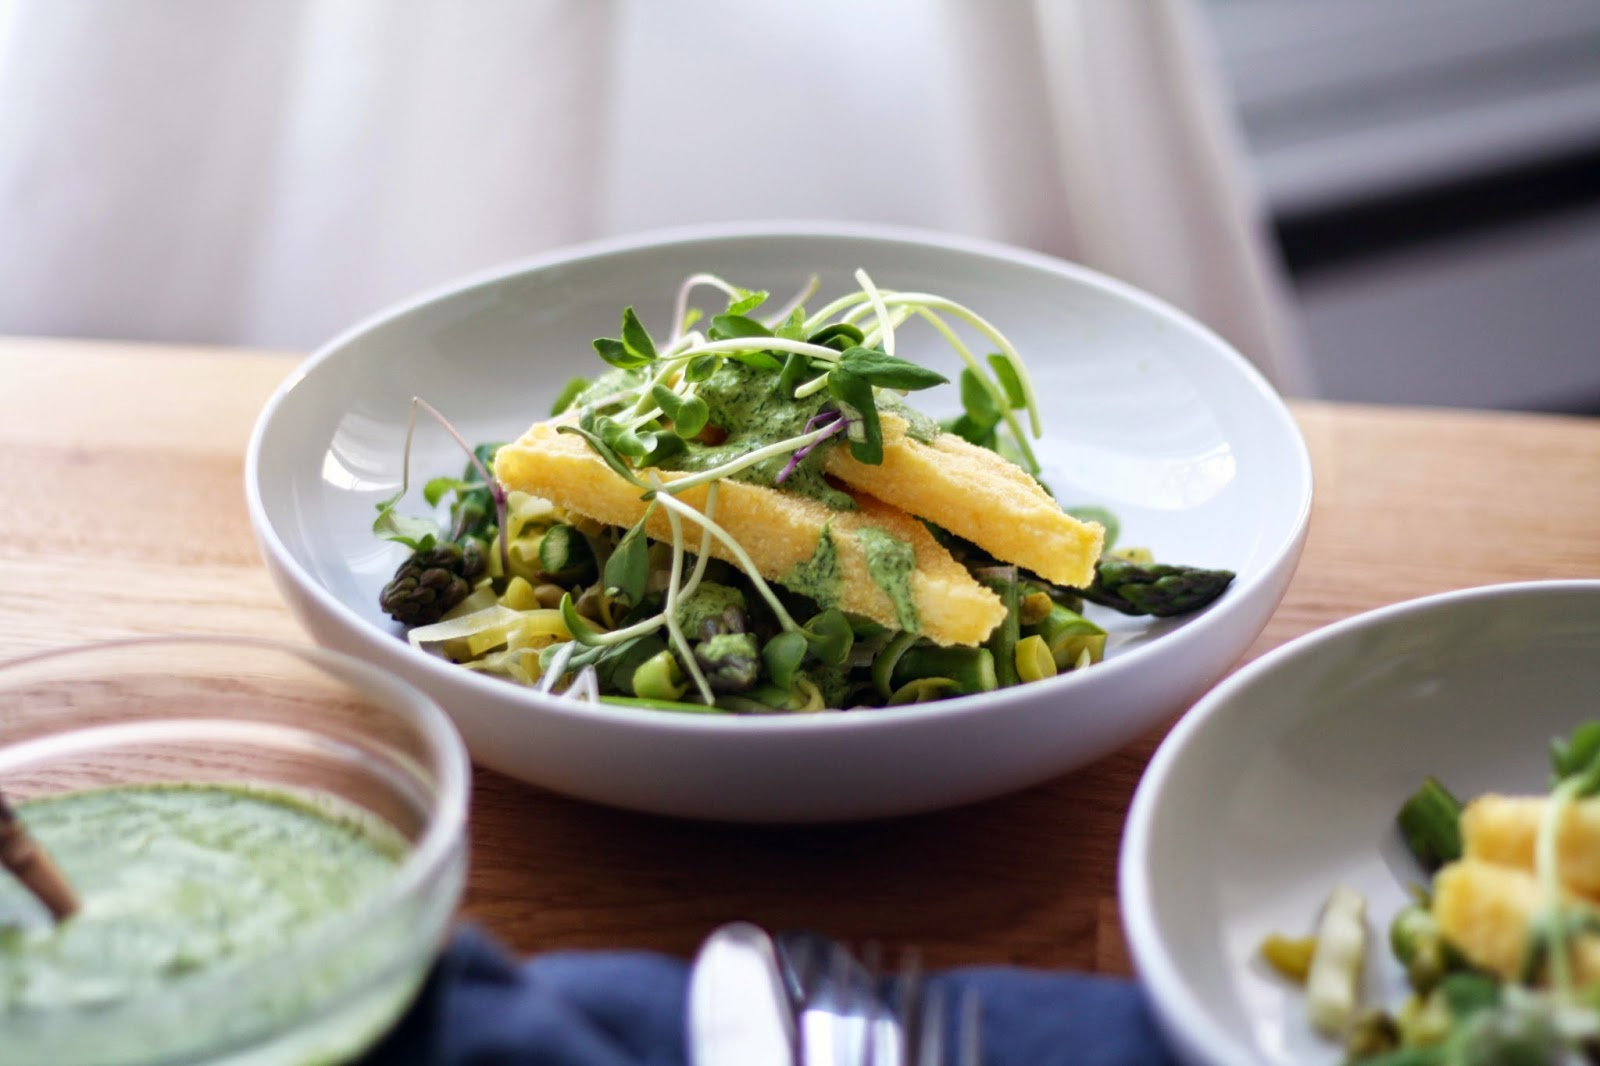 Crispy Polenta Wedges with Spring Greens and a Lemony-Dill Pesto | Sevengrams